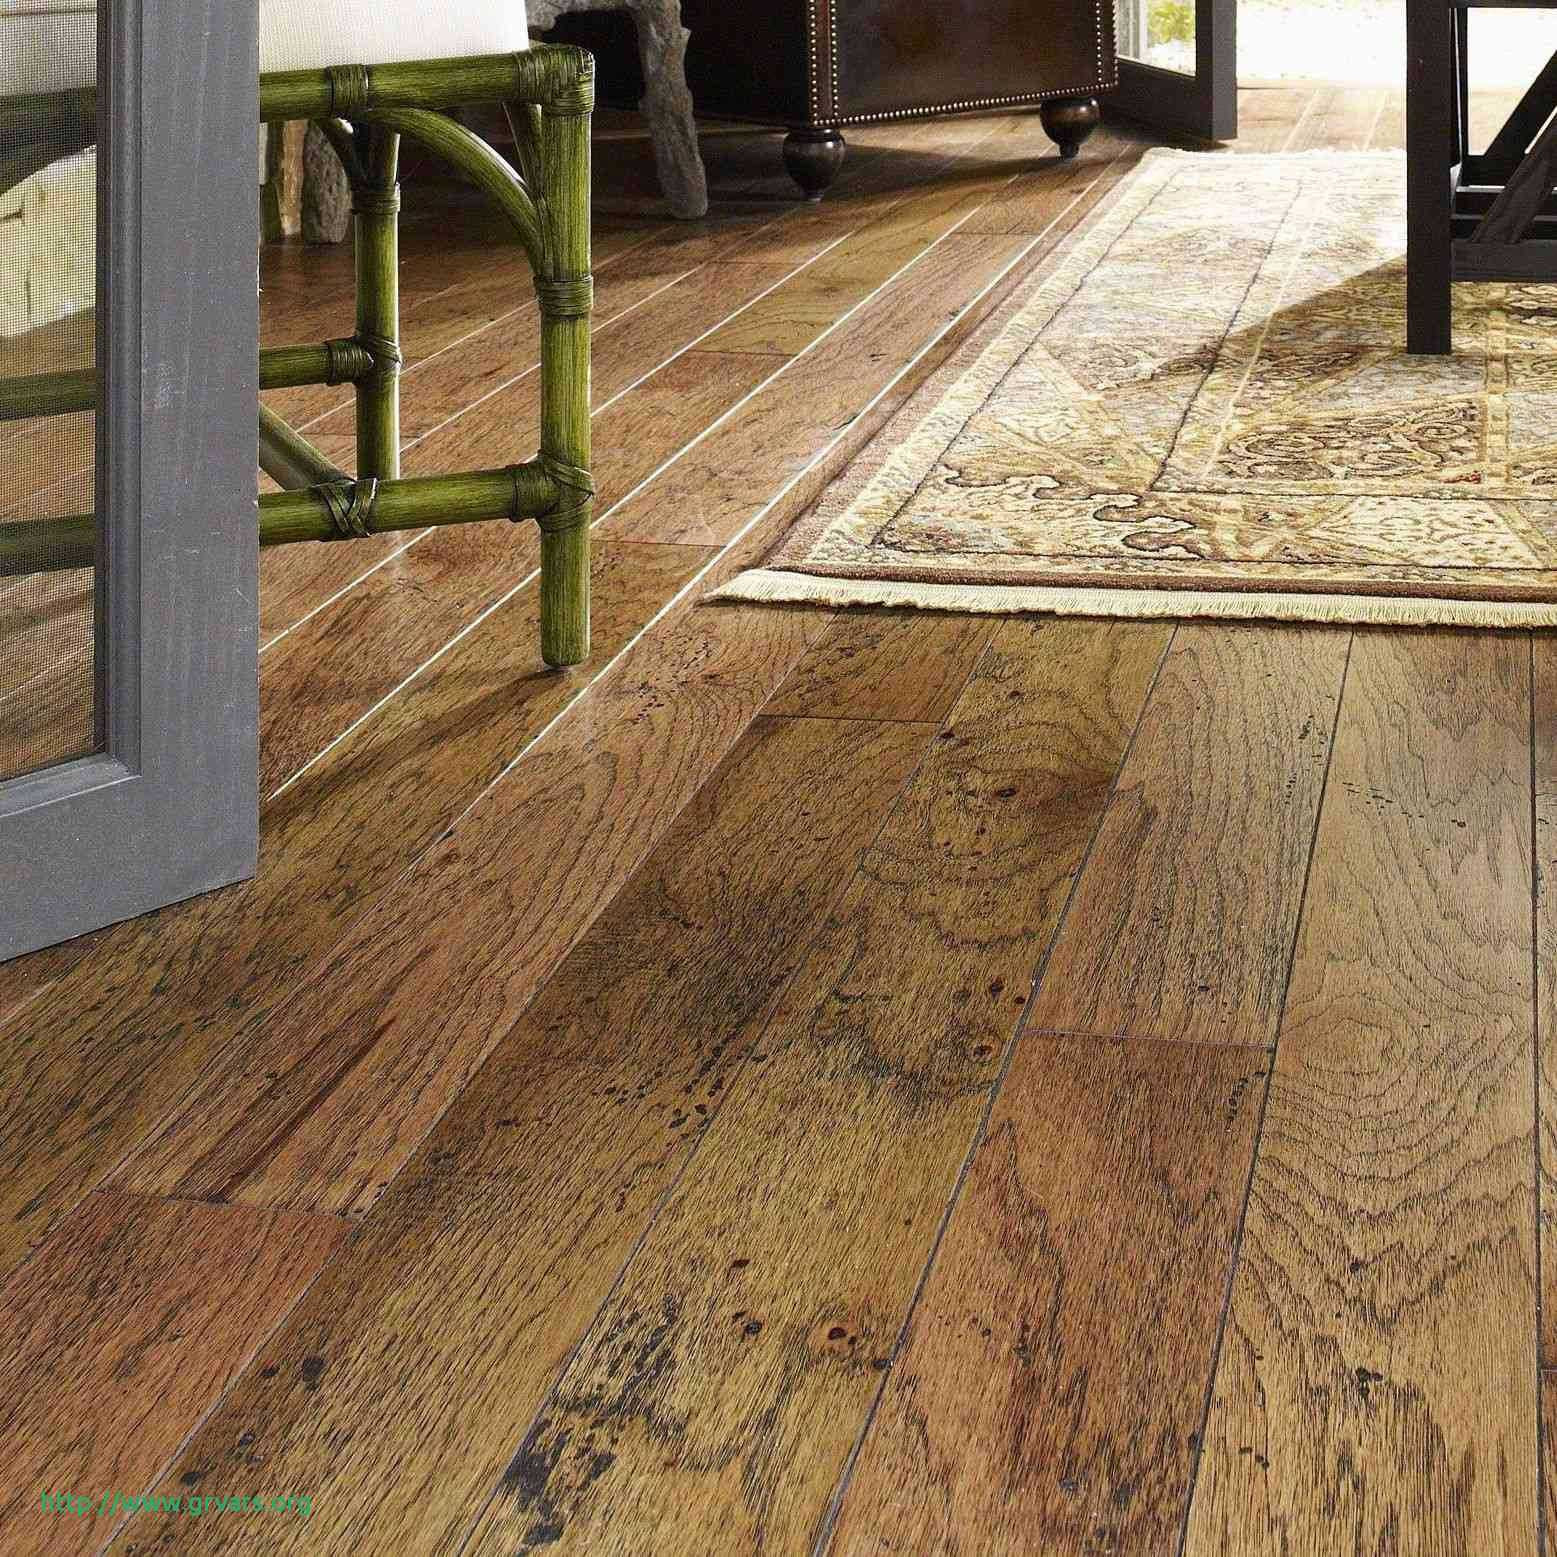 bruce hardwood floors cost per square foot of 23 frais how much is a hardwood floor ideas blog throughout hardwood floor designs new best type wood flooring best floor floor wood floor wood 0d